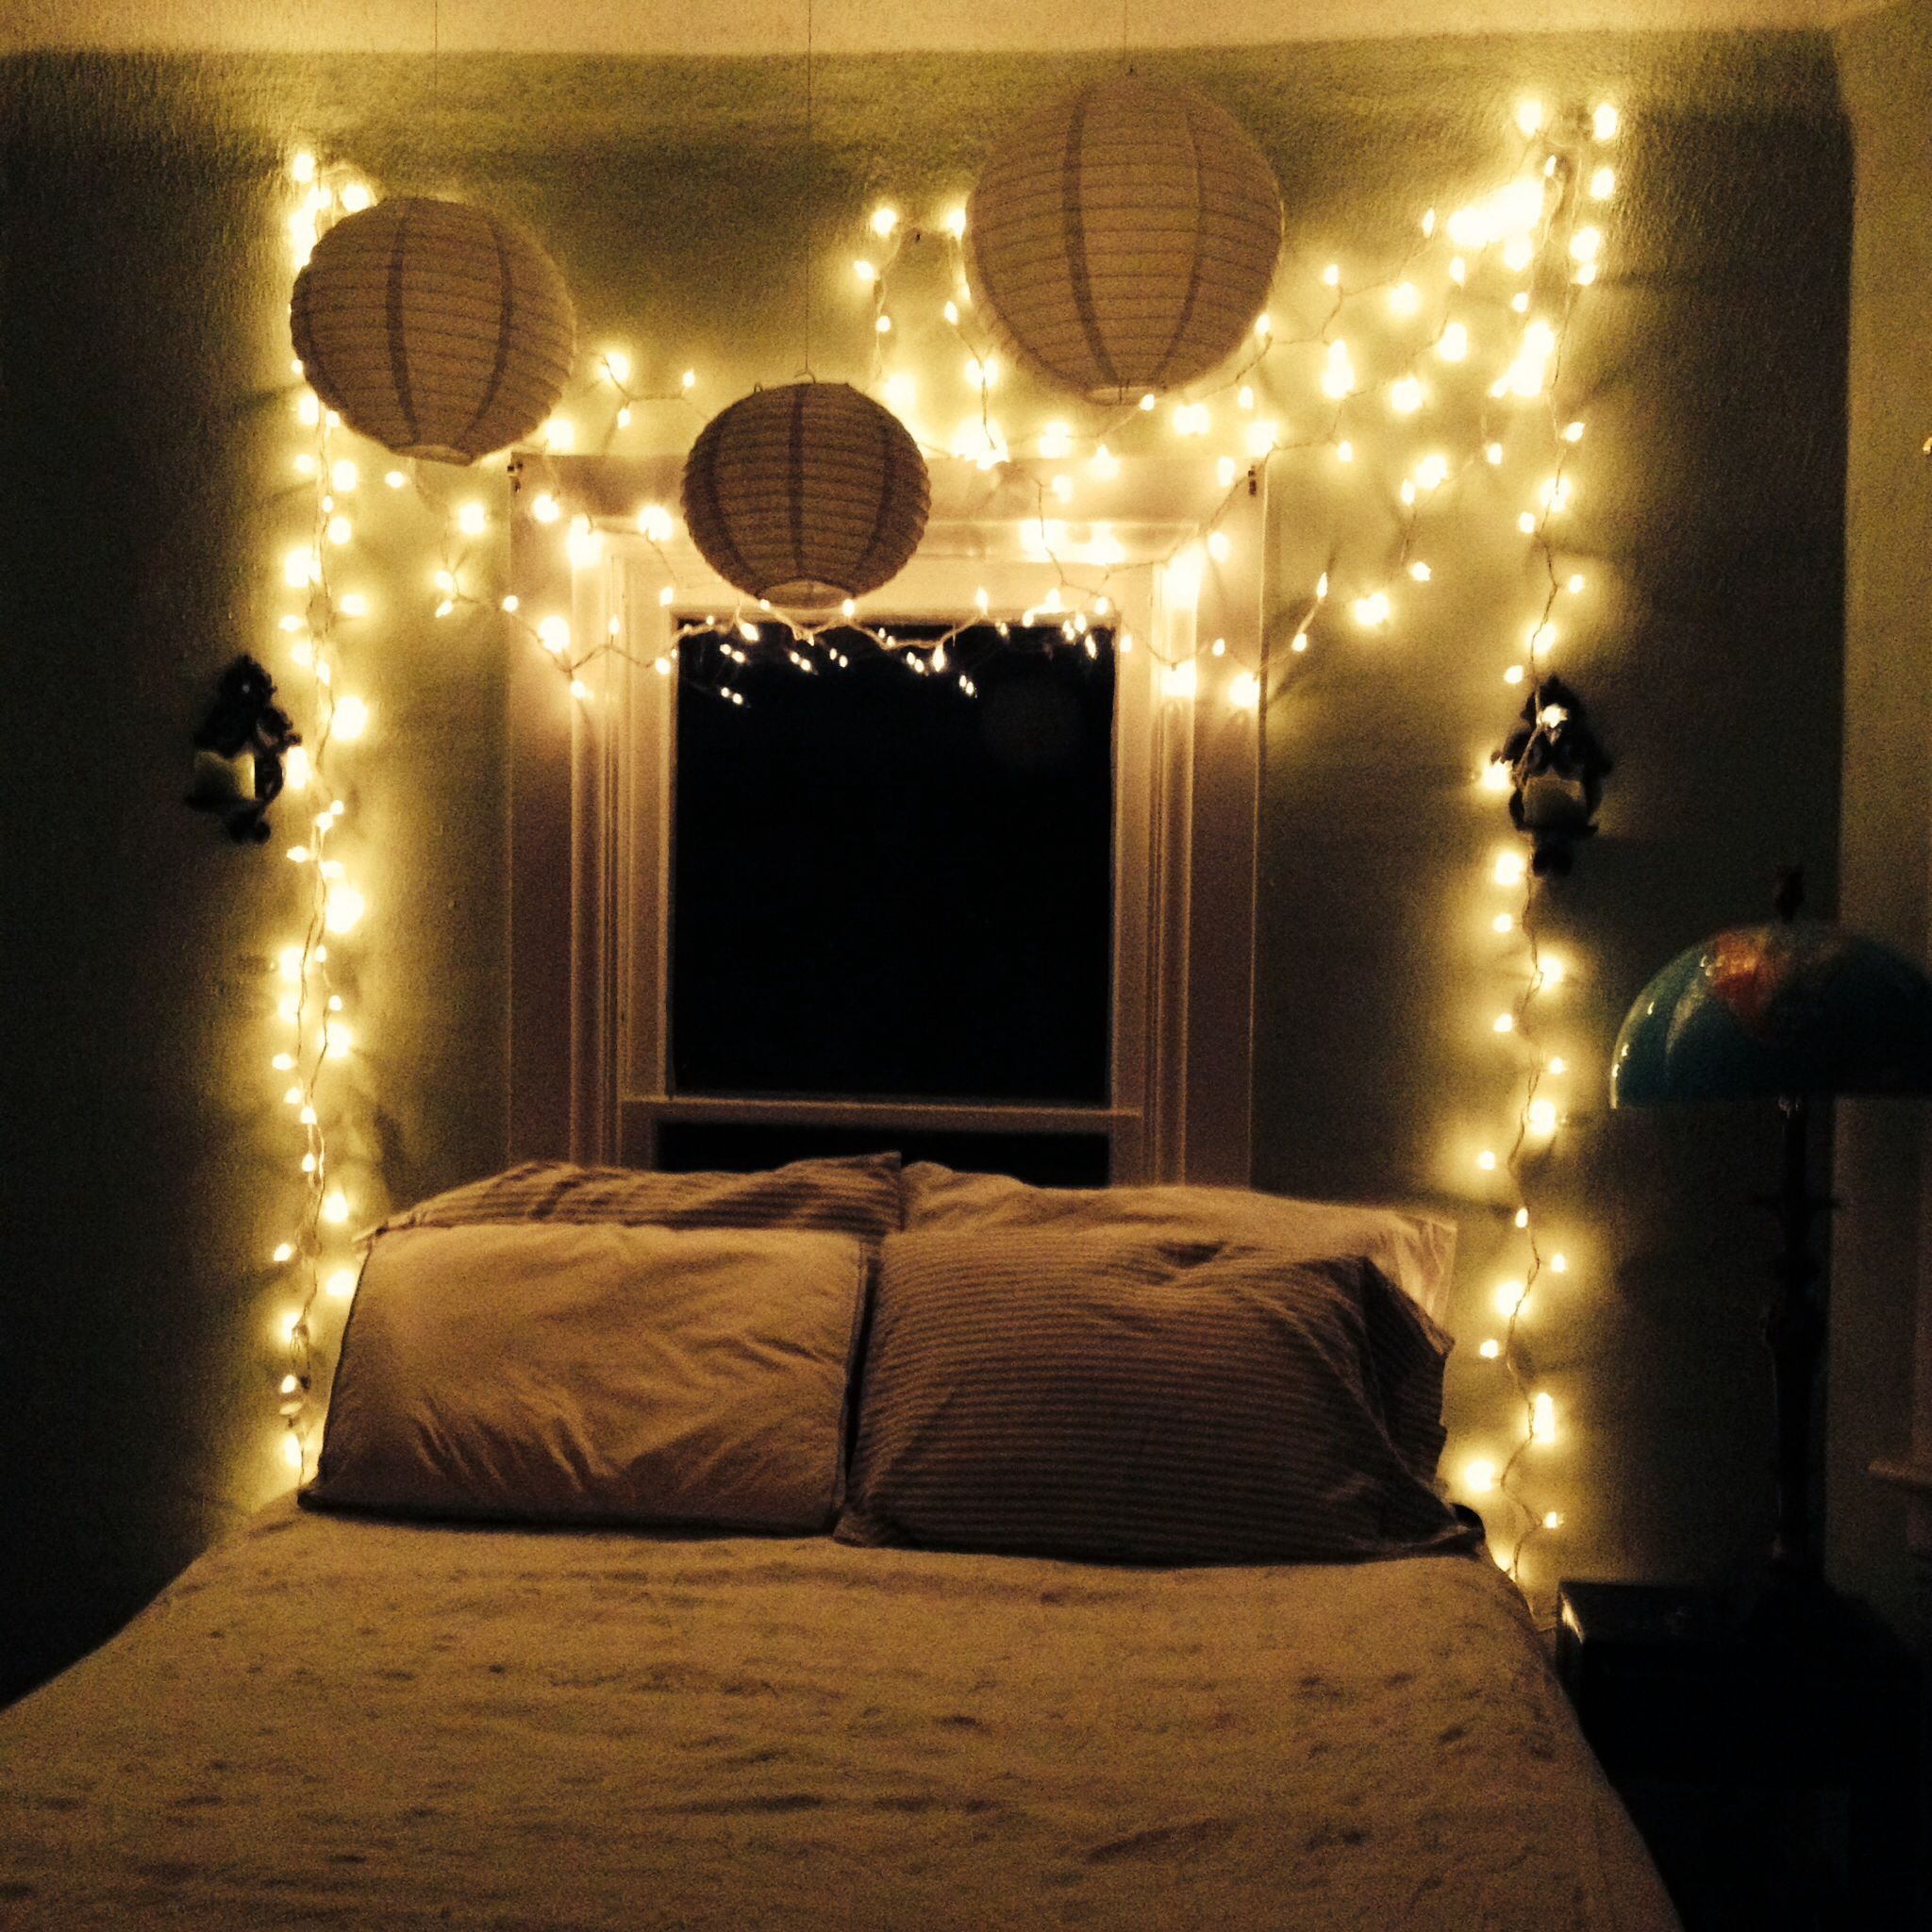 My Bedroom Oasis Twinkle Lights White And Stripes Apartment - Twinkle lights for bedroom